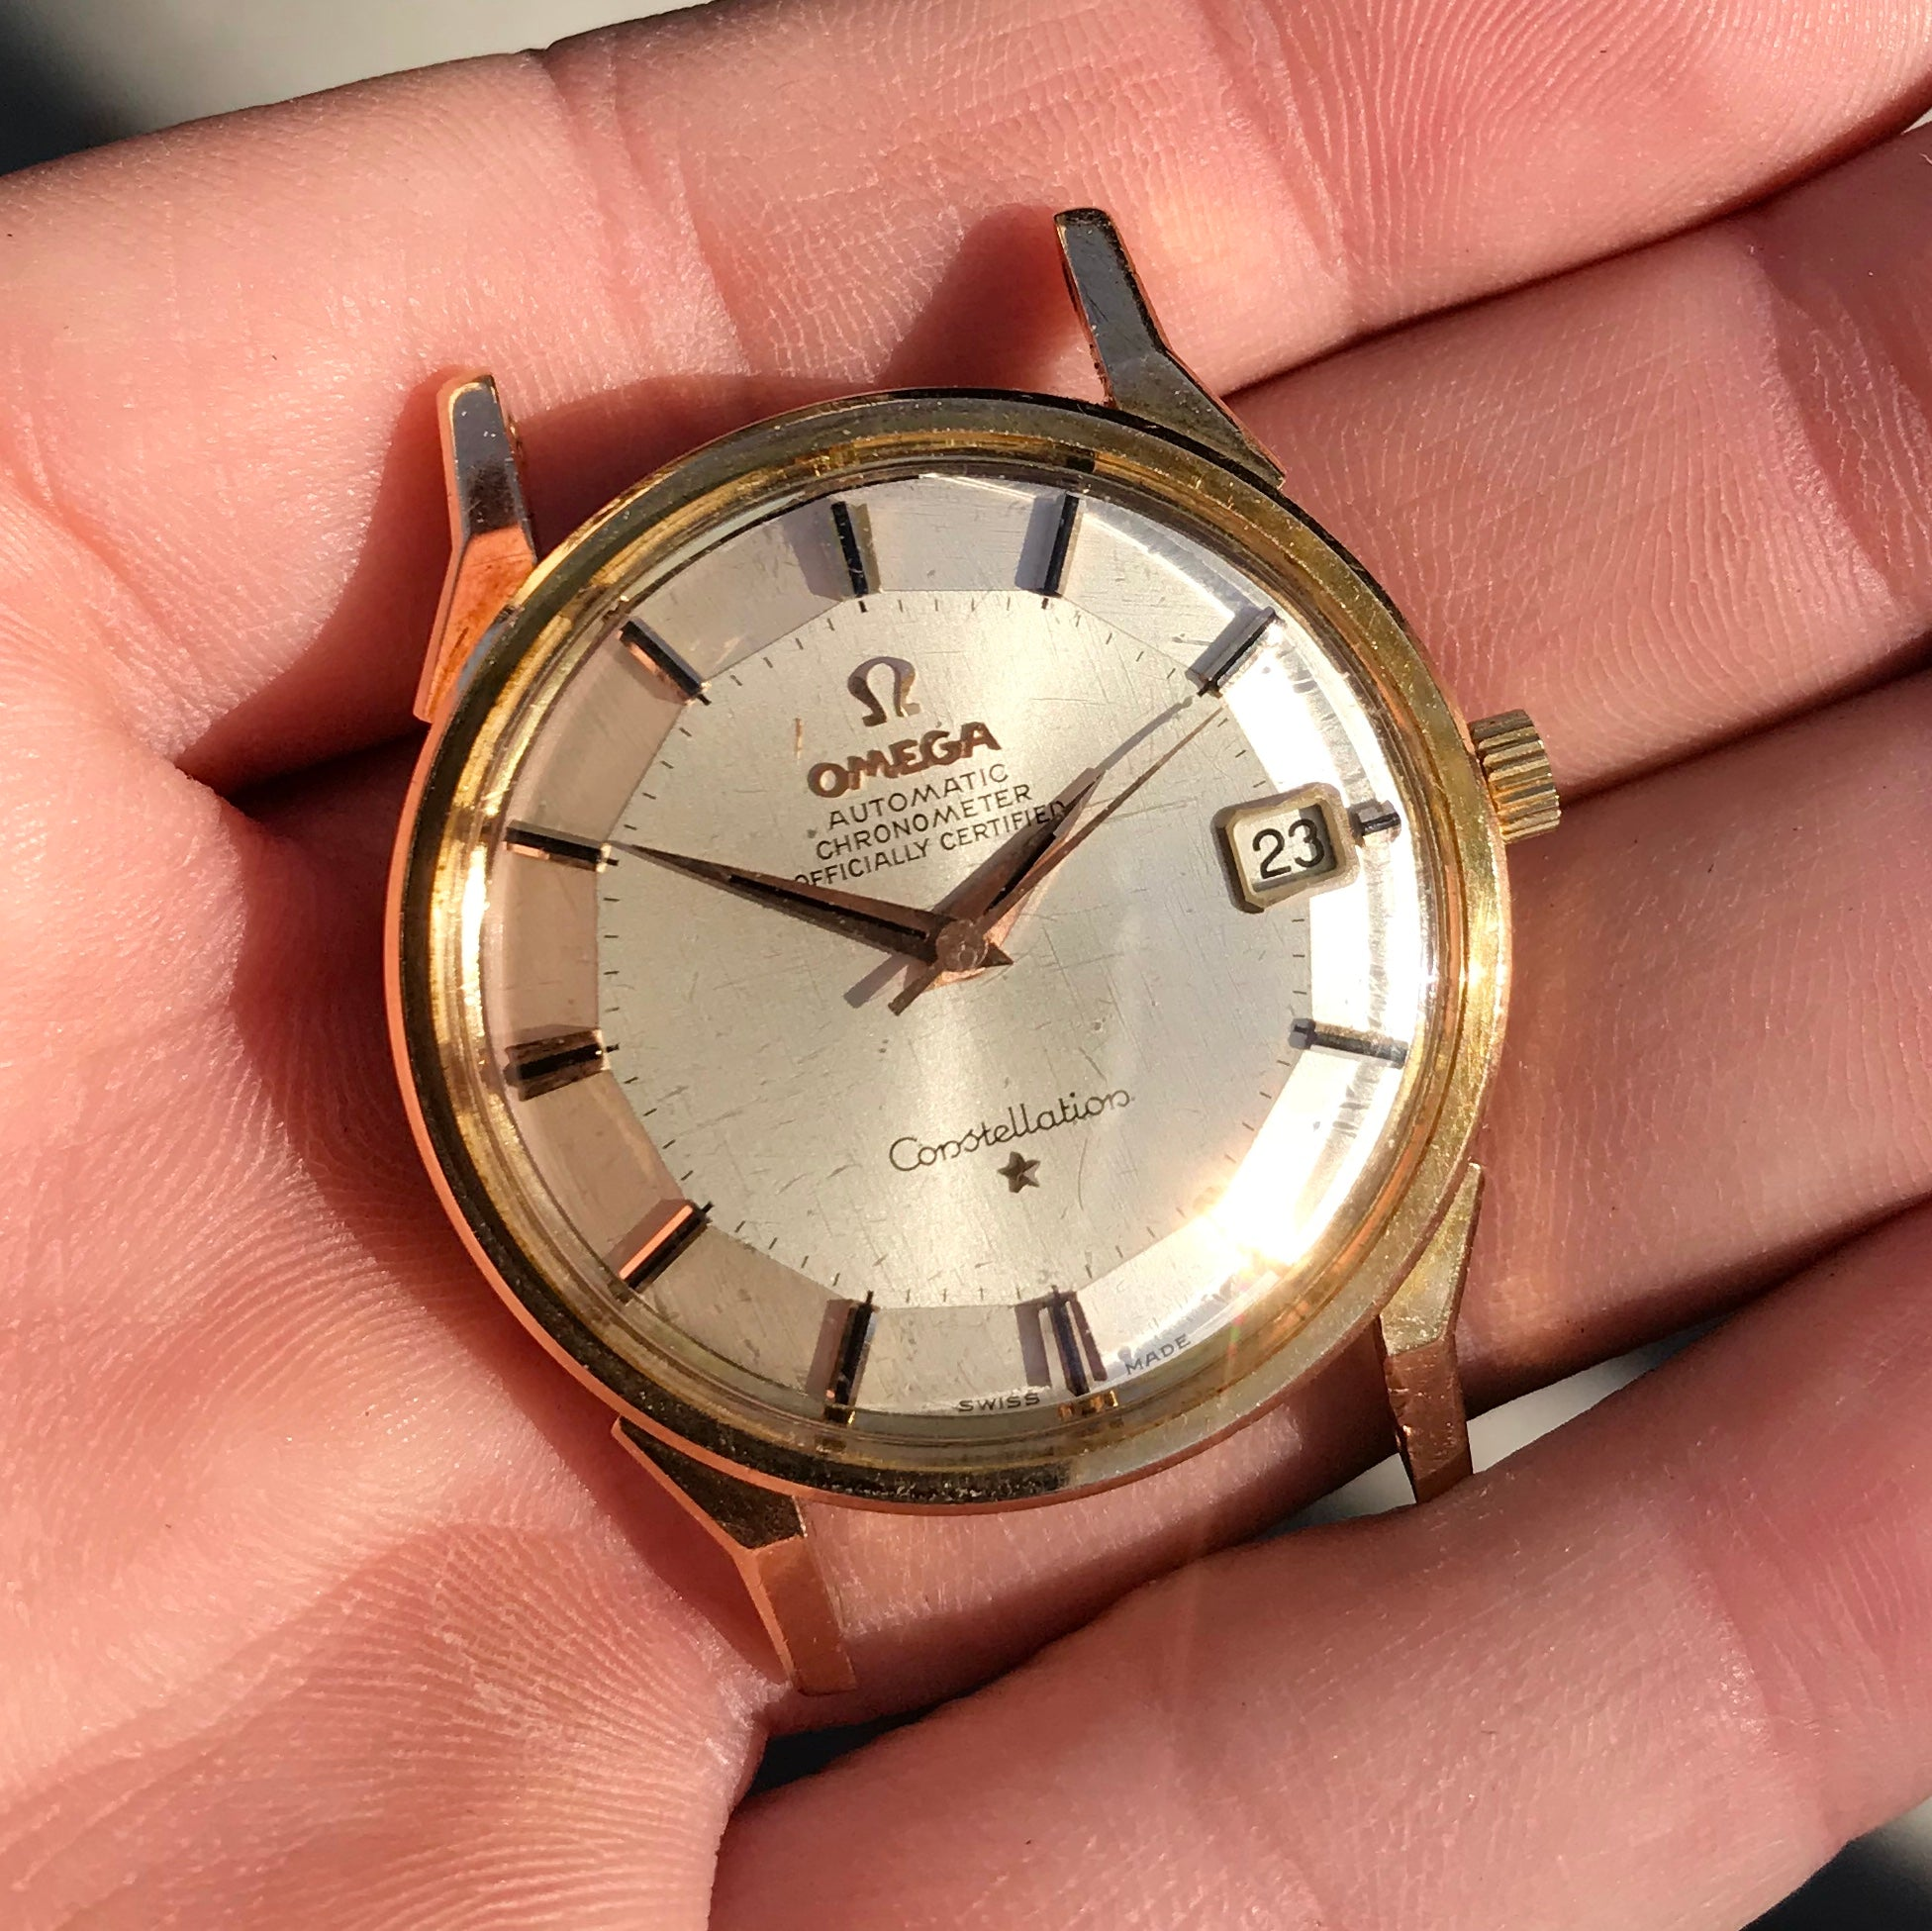 Vintage Omega Constellation Date 1683005 18K Yellow & Pink Gold Caliber 561 Automatic Wristwatch